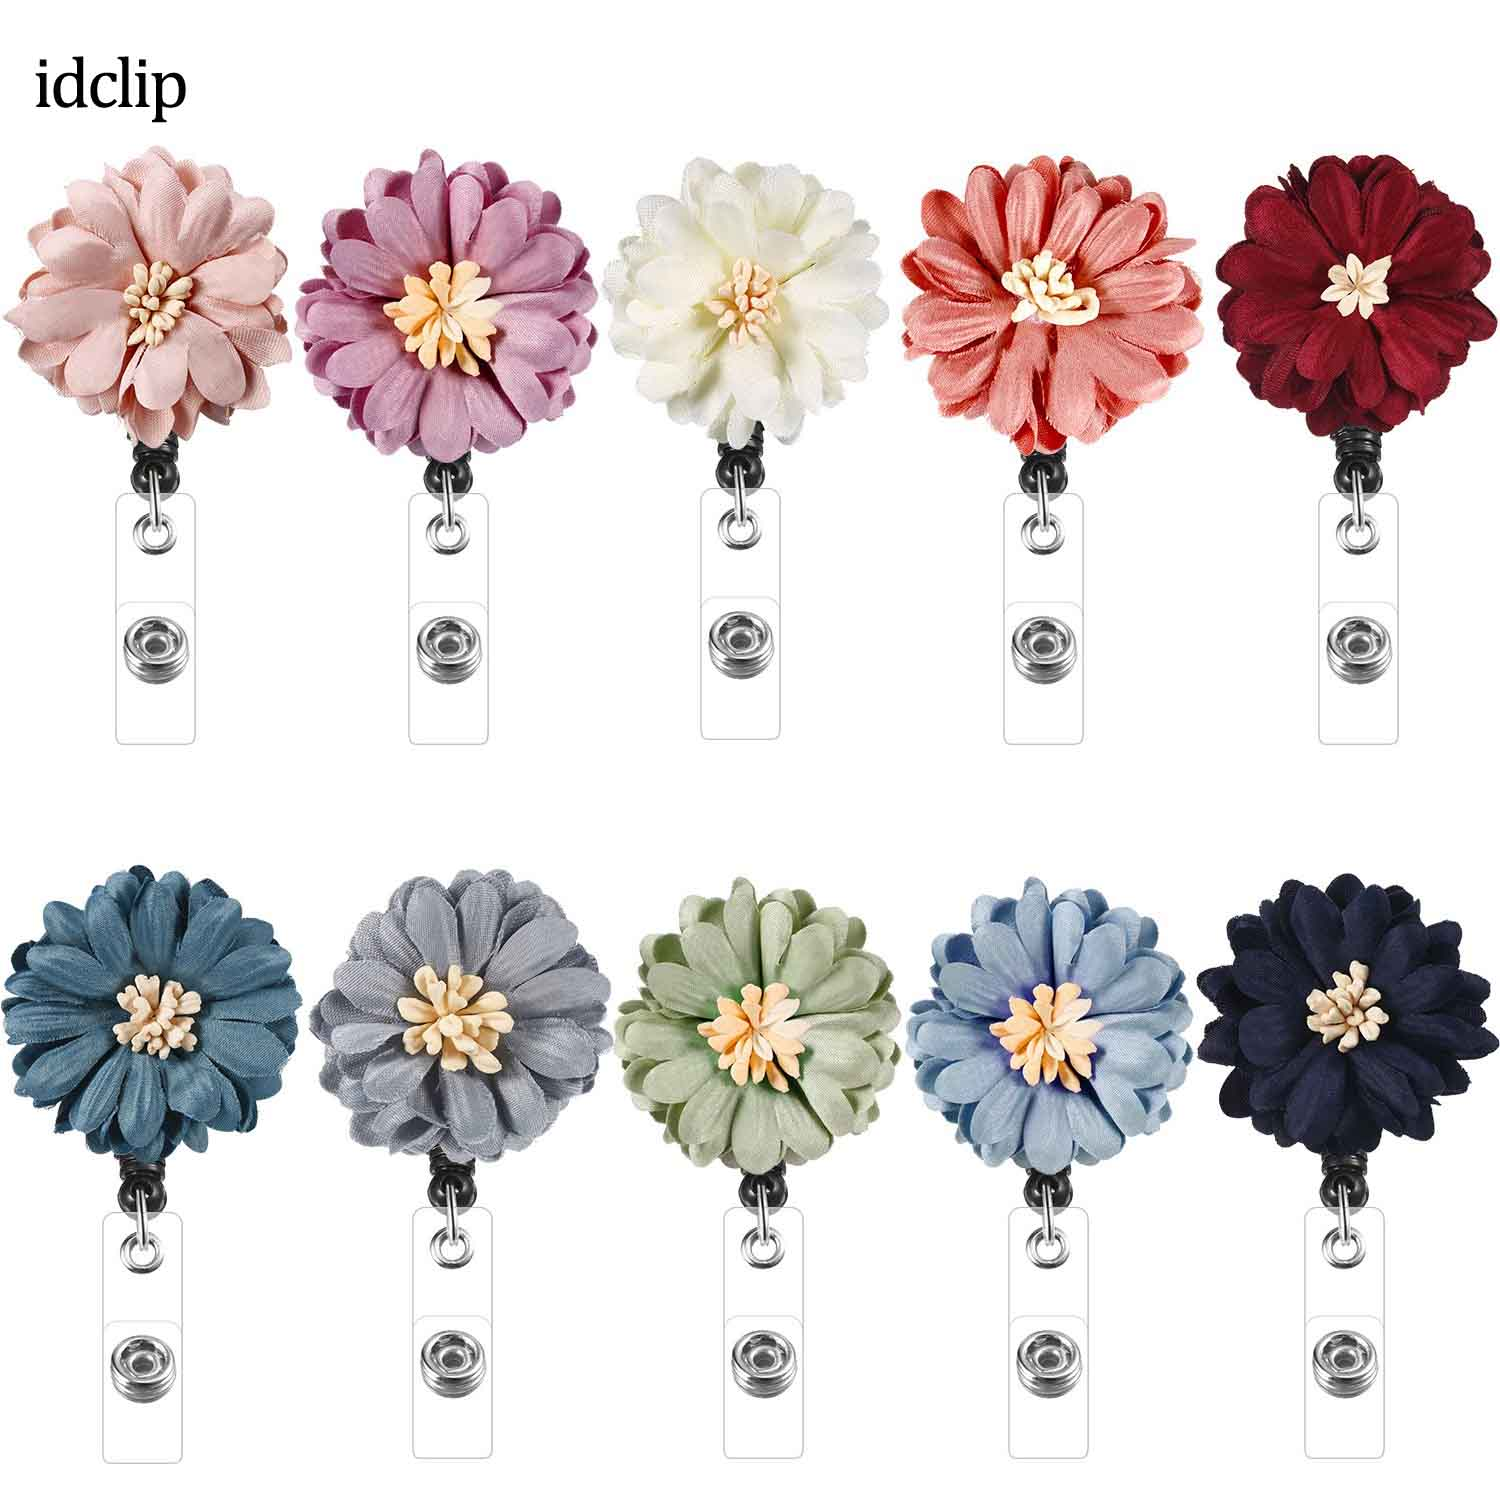 idclip 10 PCS Daisy Retractable Badge Holder with Alligator Clip ID Reel on Card Holders